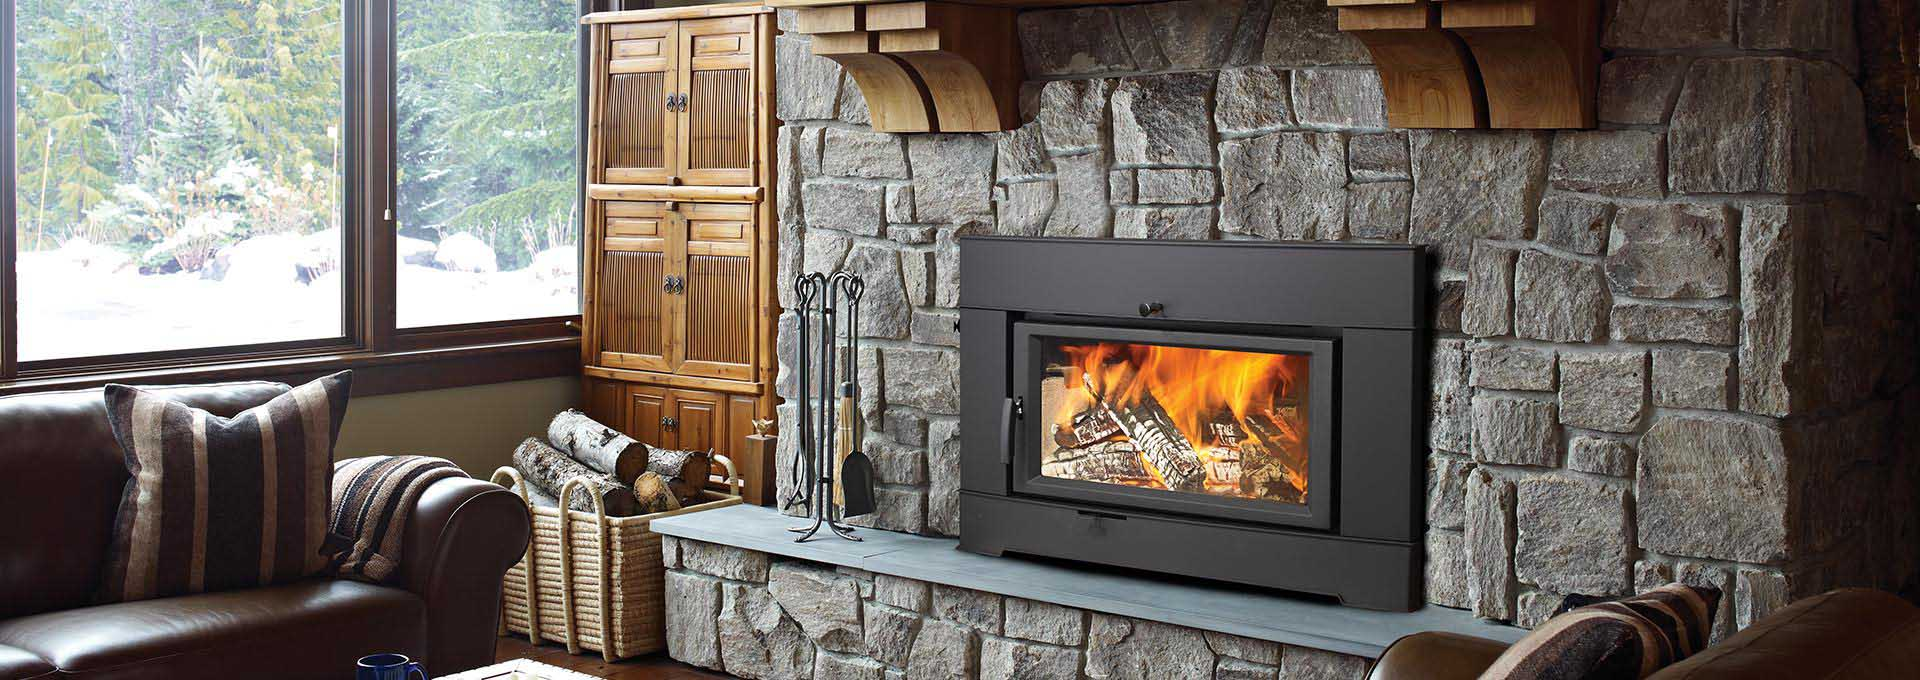 Top 5 Reasons You Should Upgrade to a Wood Fireplace Insert